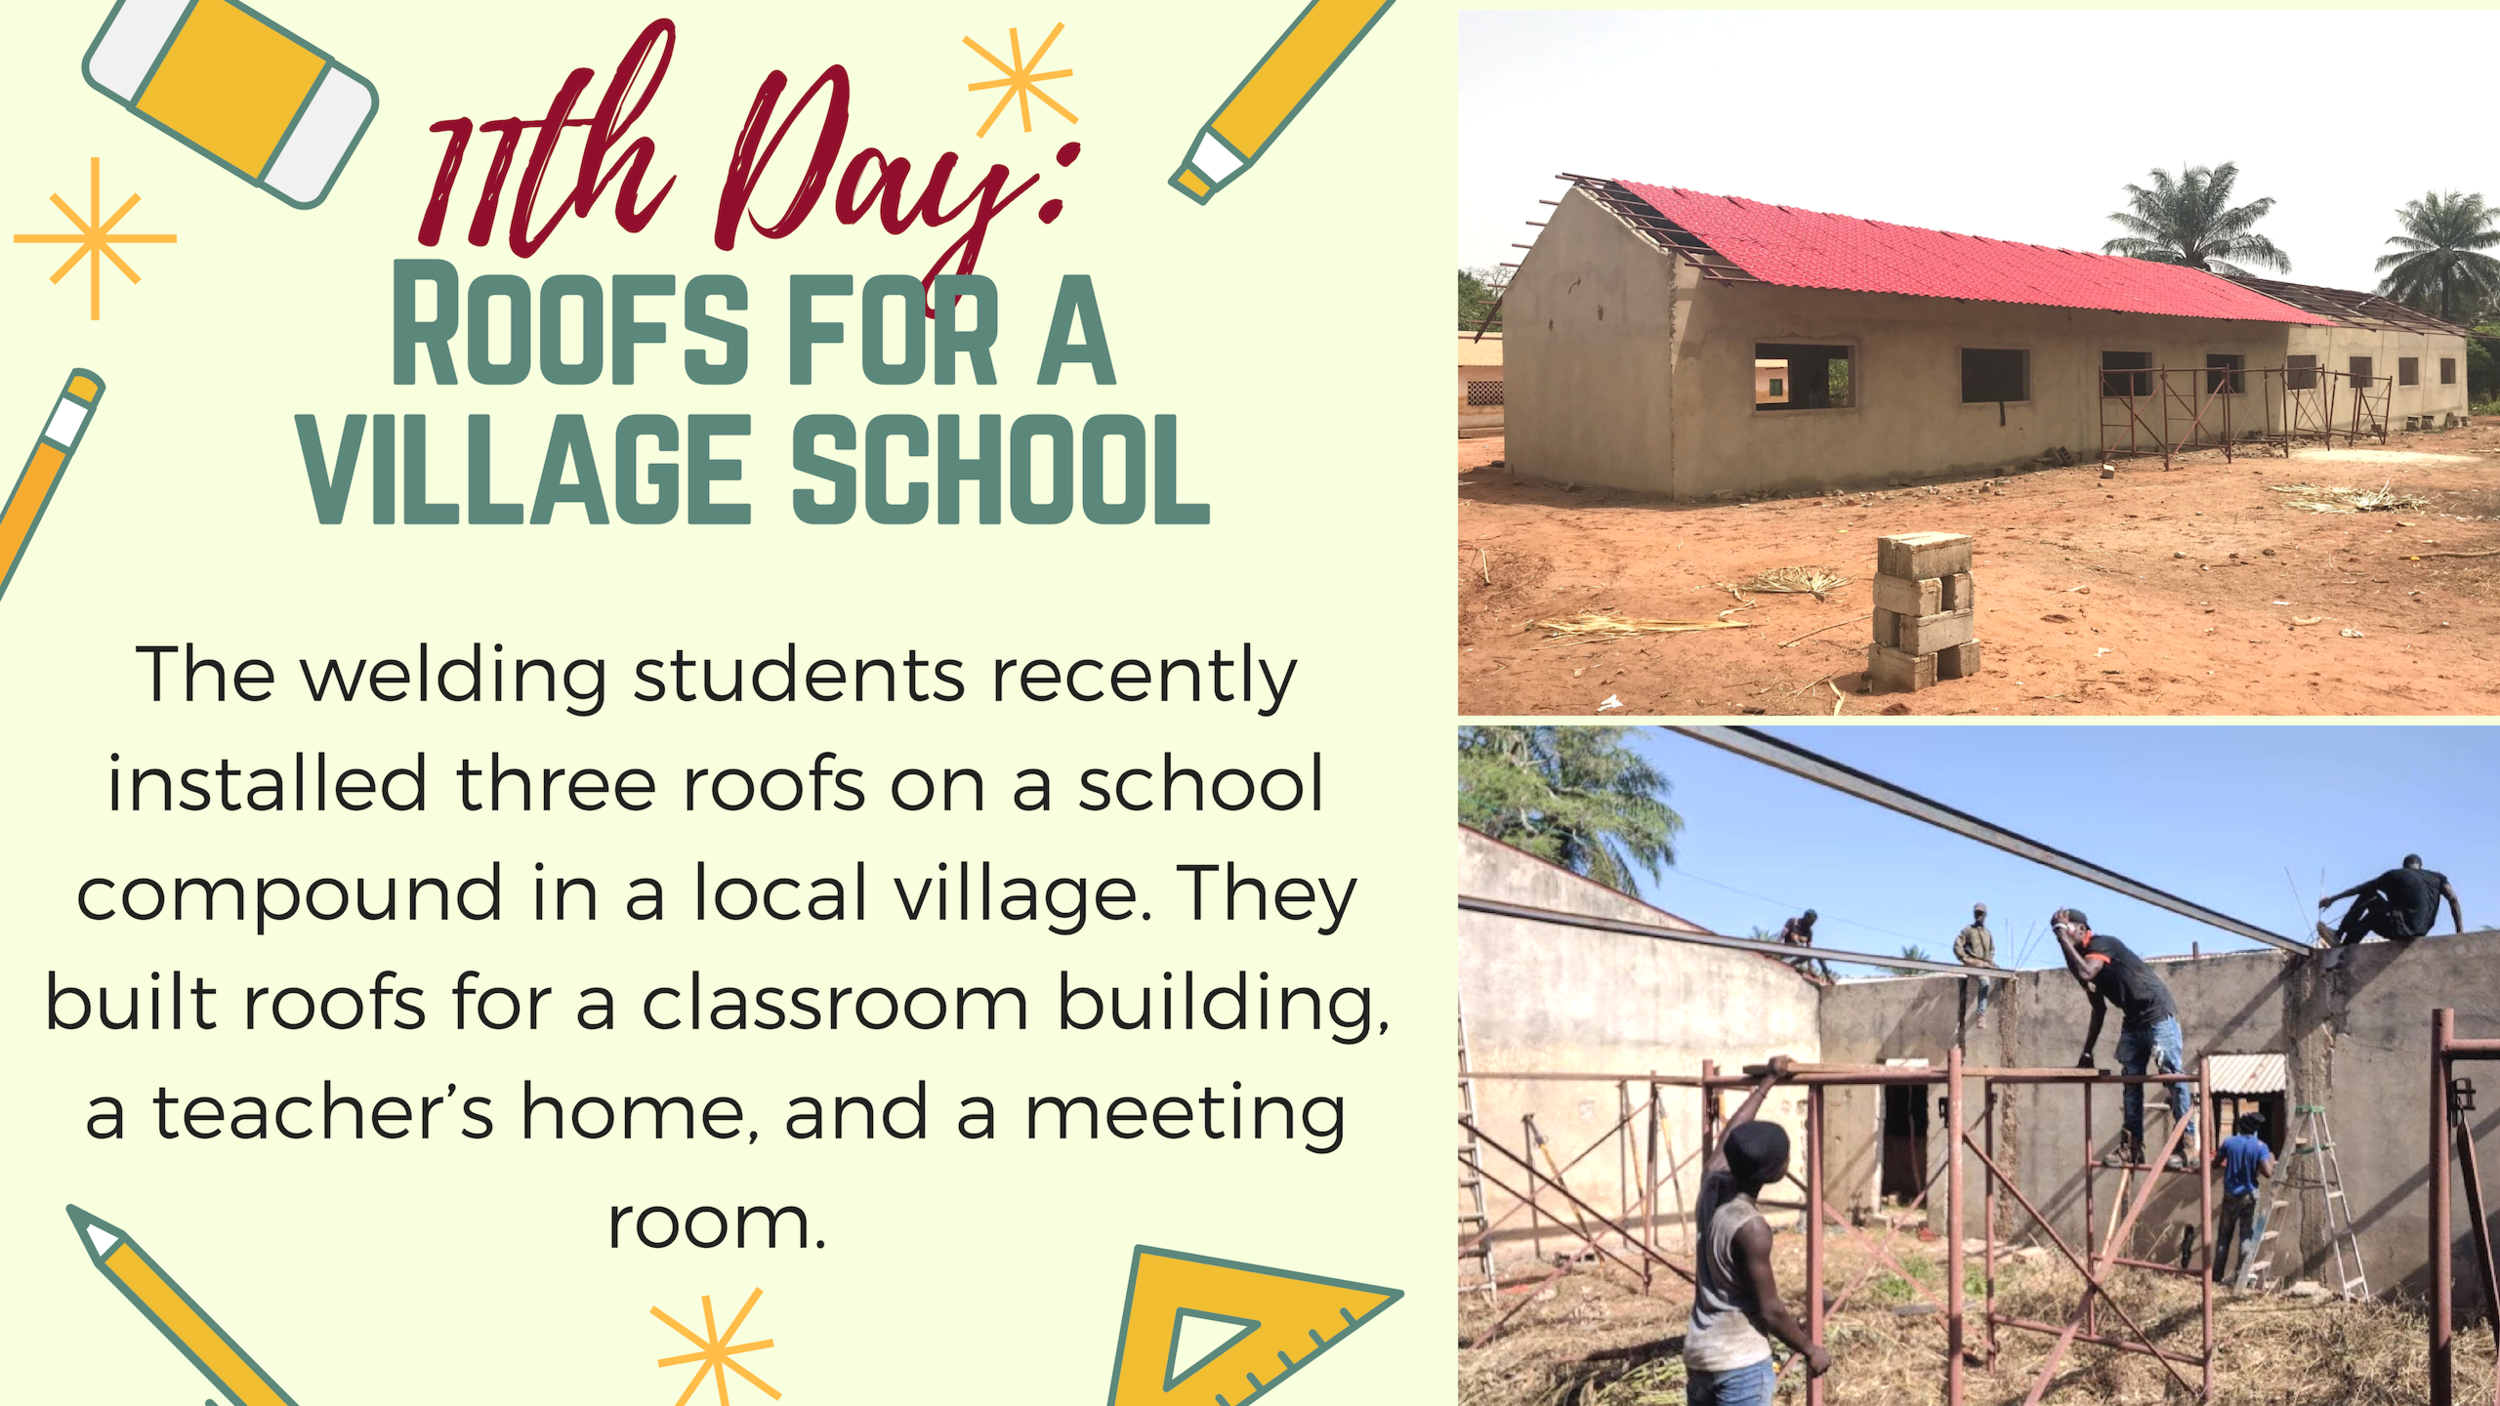 11th day roofs for a village school.png